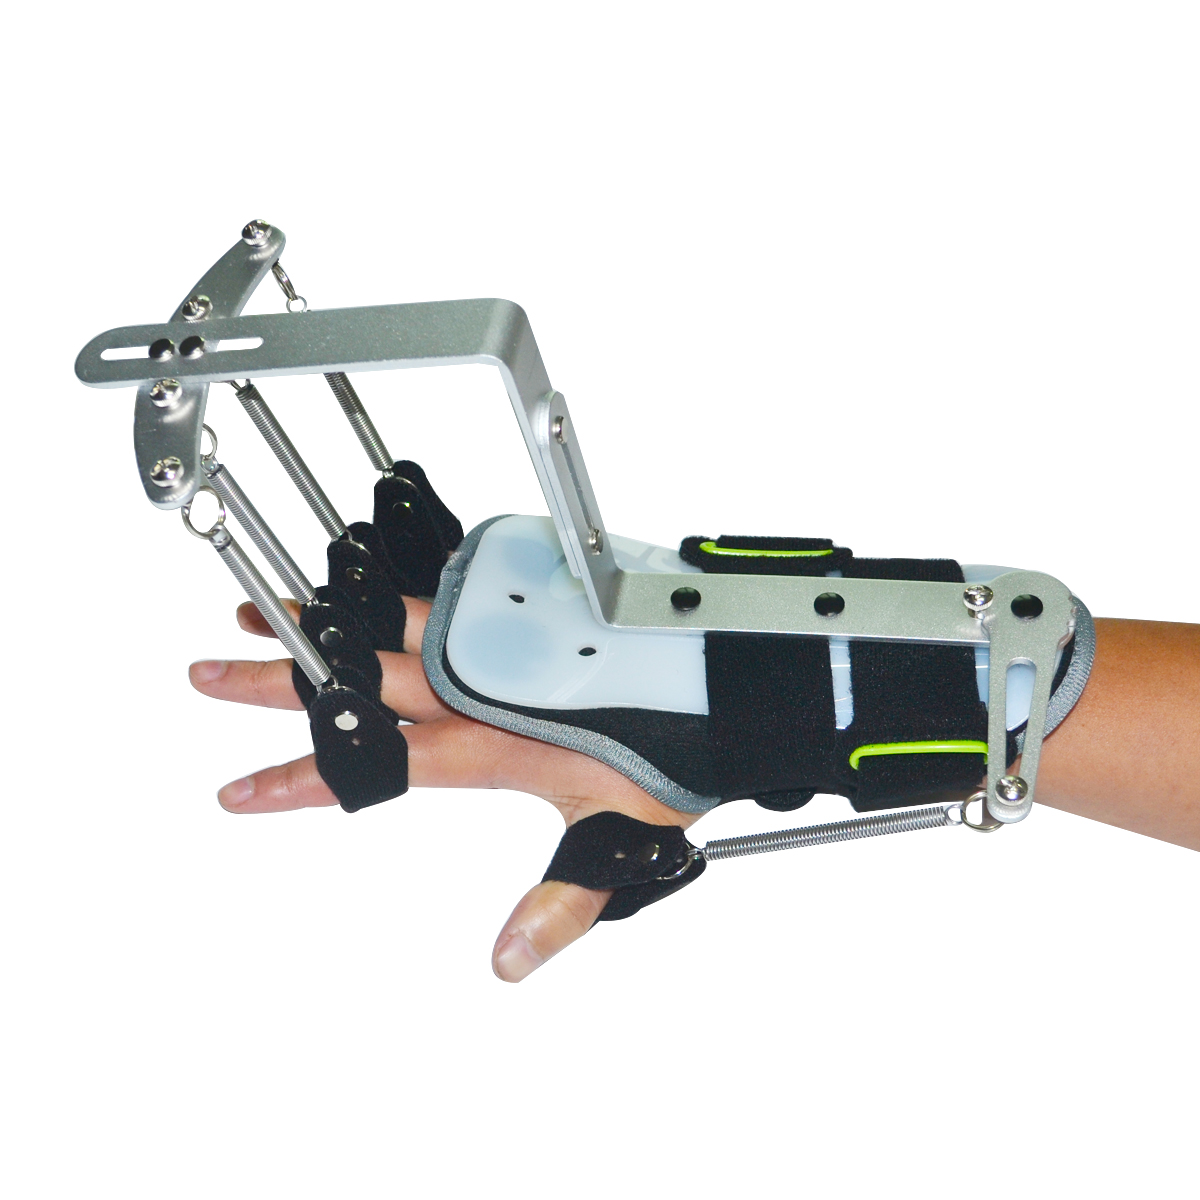 New Version Finger & Wrist Orthotics Exerciser Physiotherapy Rehabilitation Dynamic Wrist Support Brace For Hemiplegia PatientNew Version Finger & Wrist Orthotics Exerciser Physiotherapy Rehabilitation Dynamic Wrist Support Brace For Hemiplegia Patient